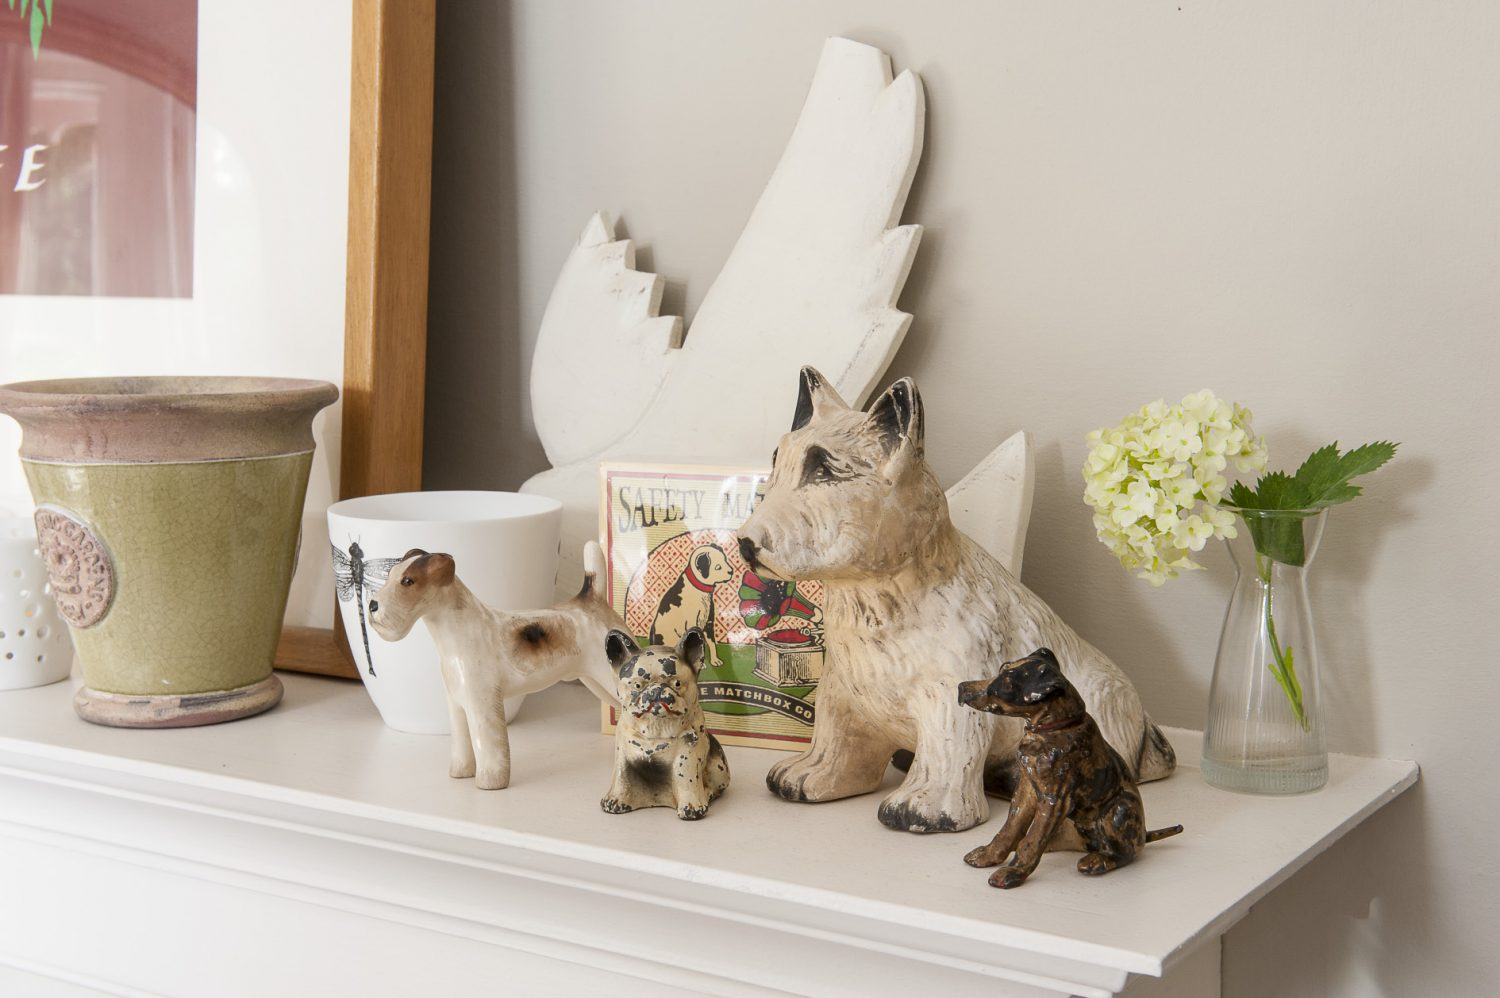 Diana has recently started a collection of ceramic dogs